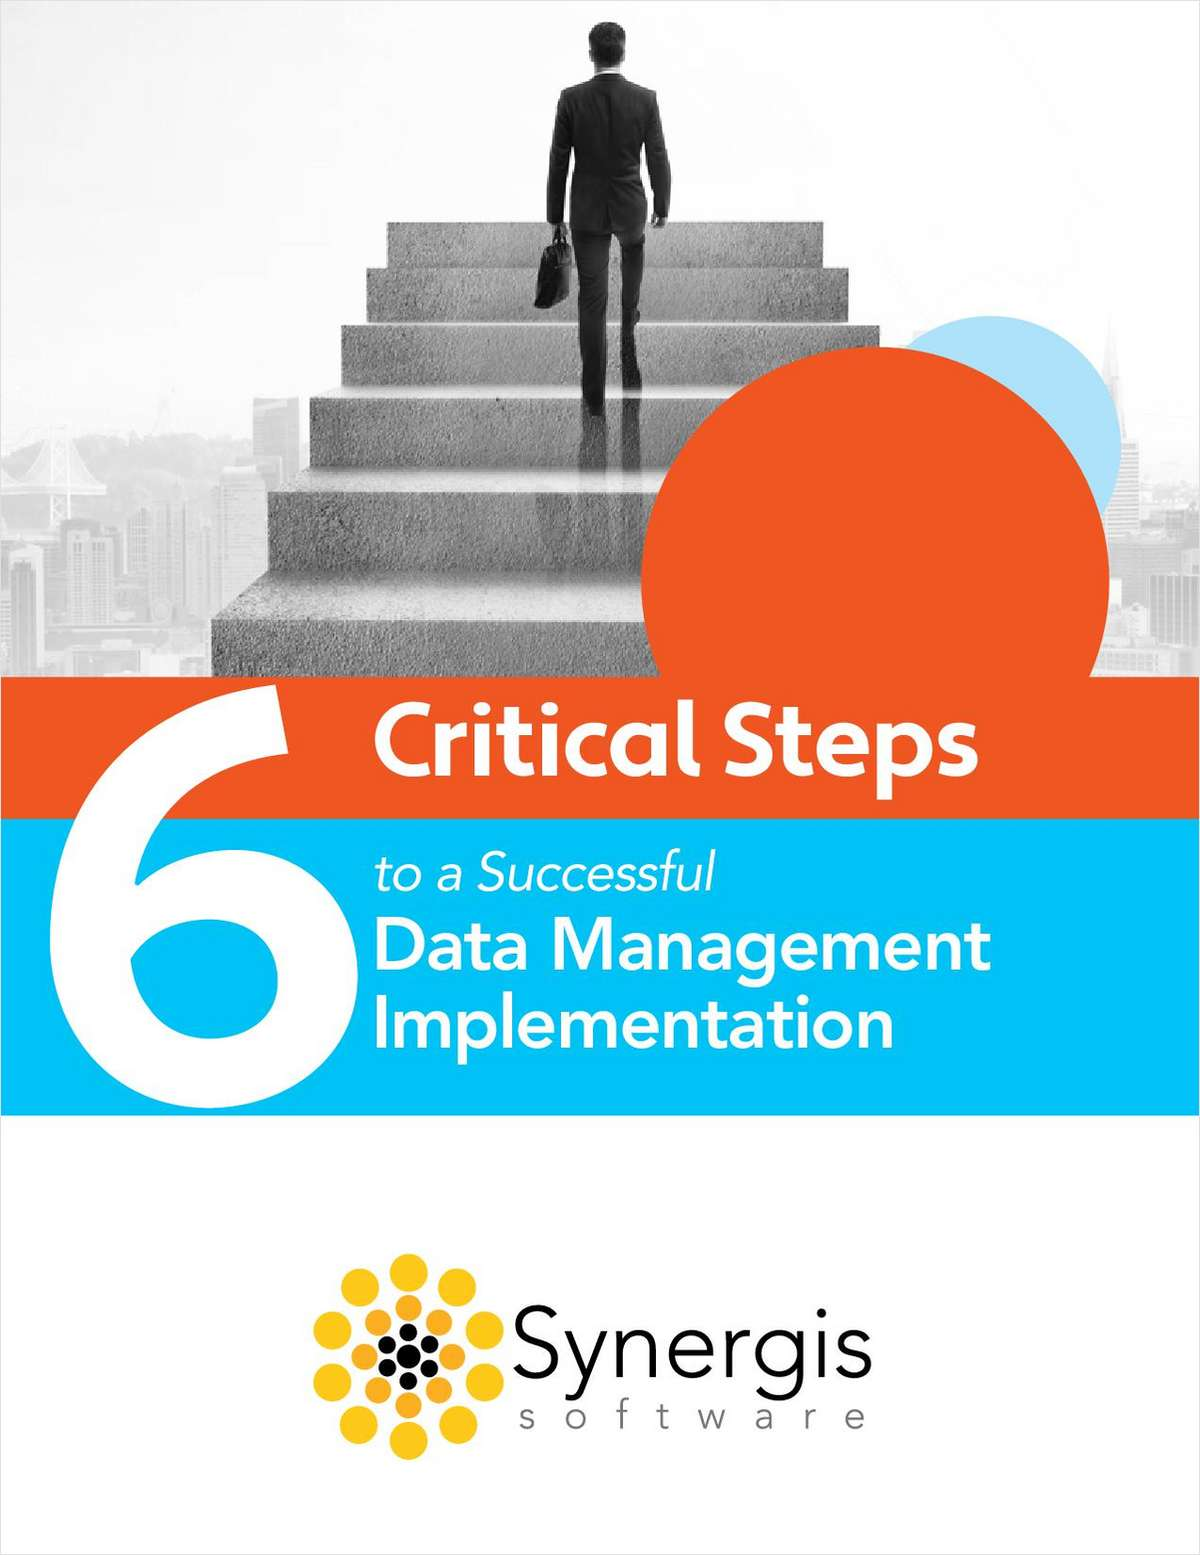 6 Critical Steps to a Successful Engineering Data Management Implementation